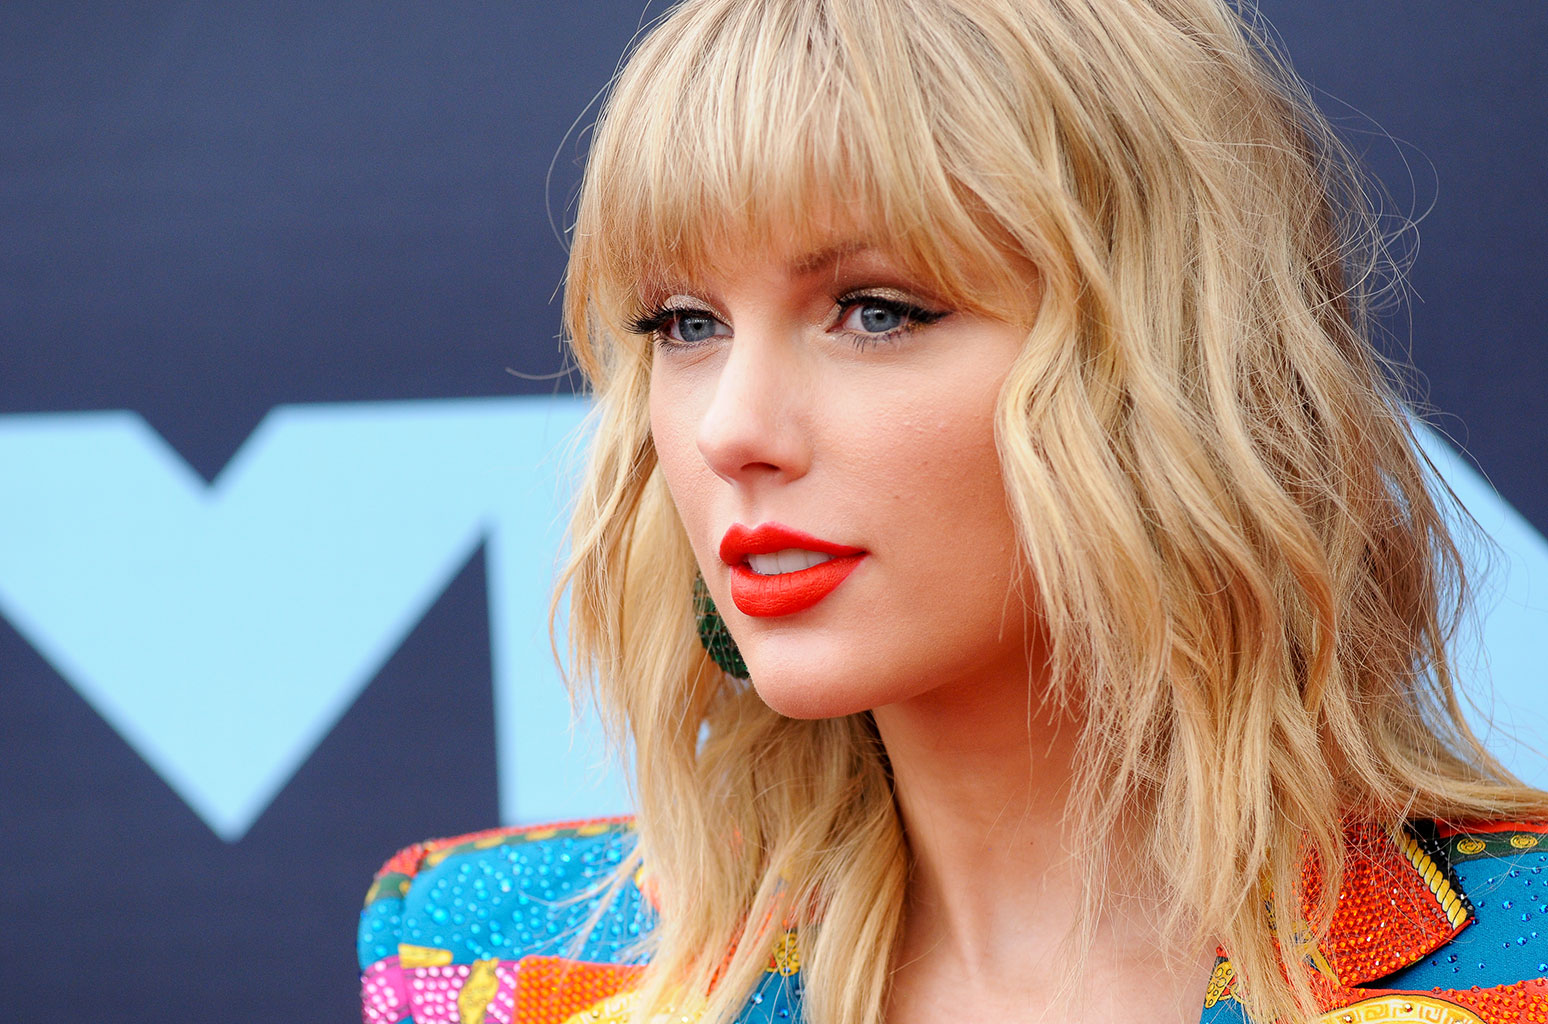 Taylor Swift Billboard - Taylor Swift Net Worth, Pics, Wallpapers, Career and Biography